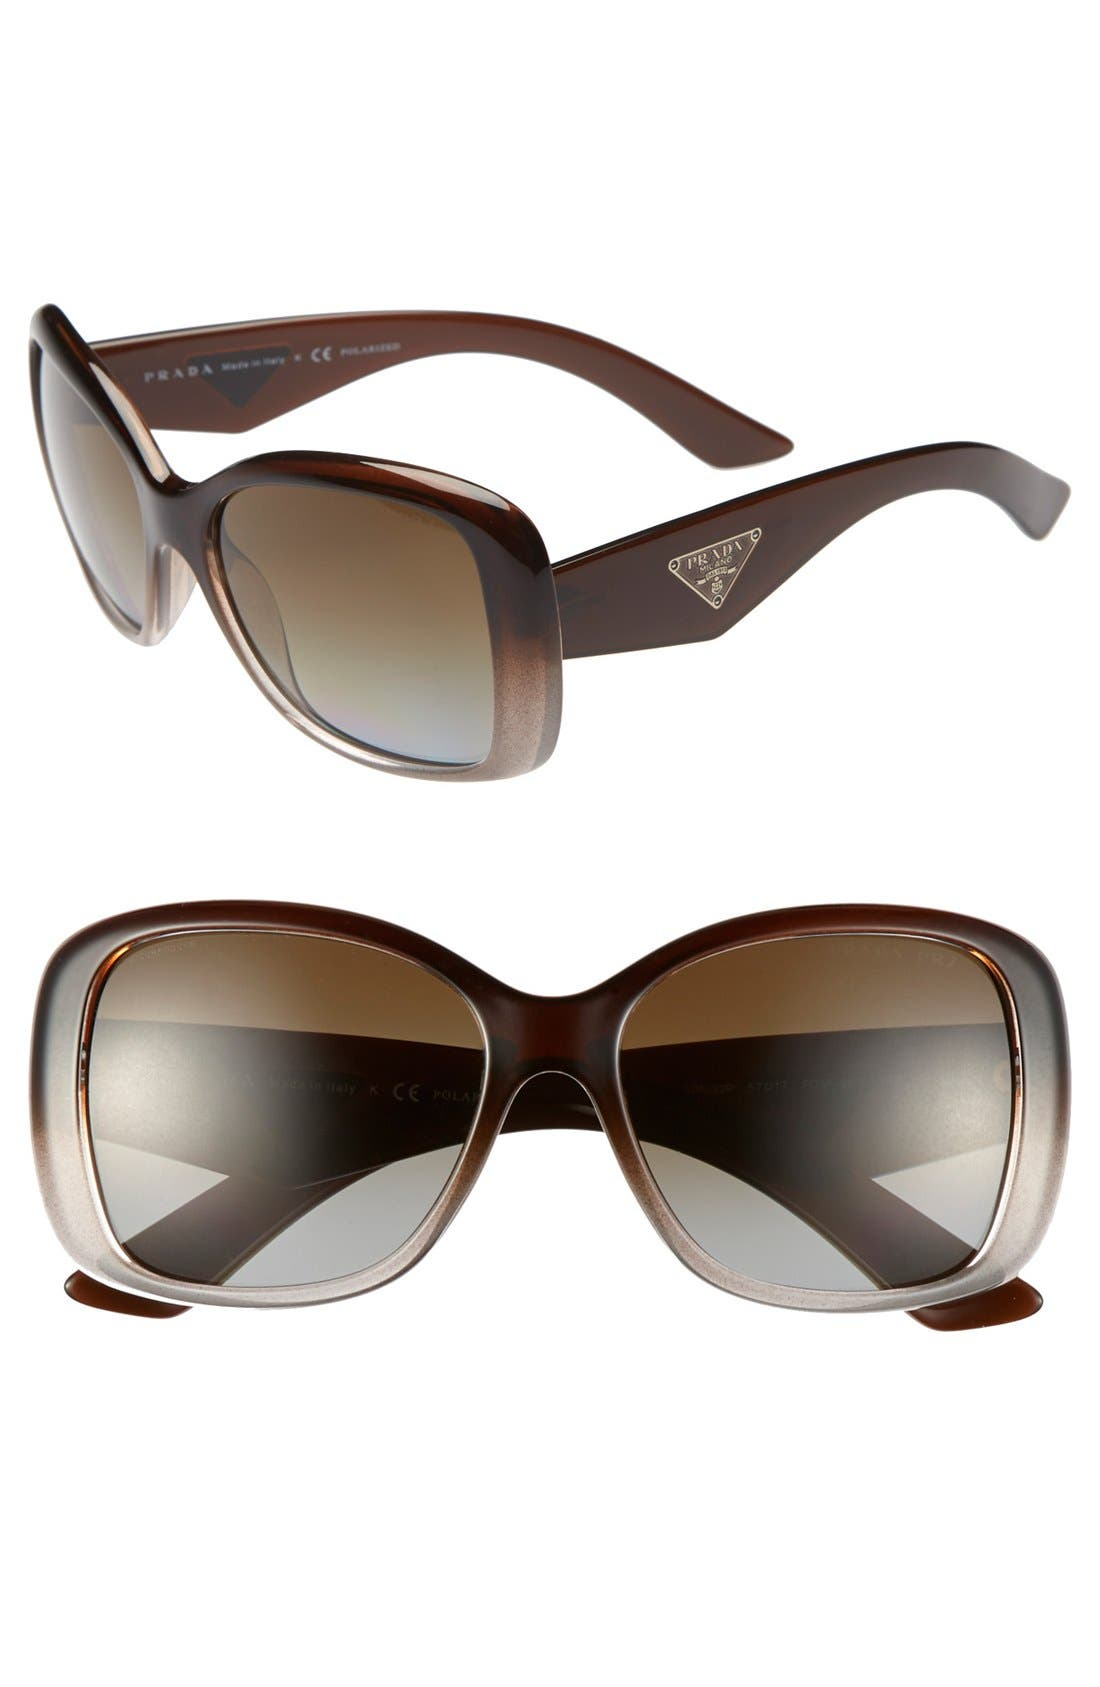 Main Image - Prada 'Oversized Glam' 57mm Polarized Sunglasses